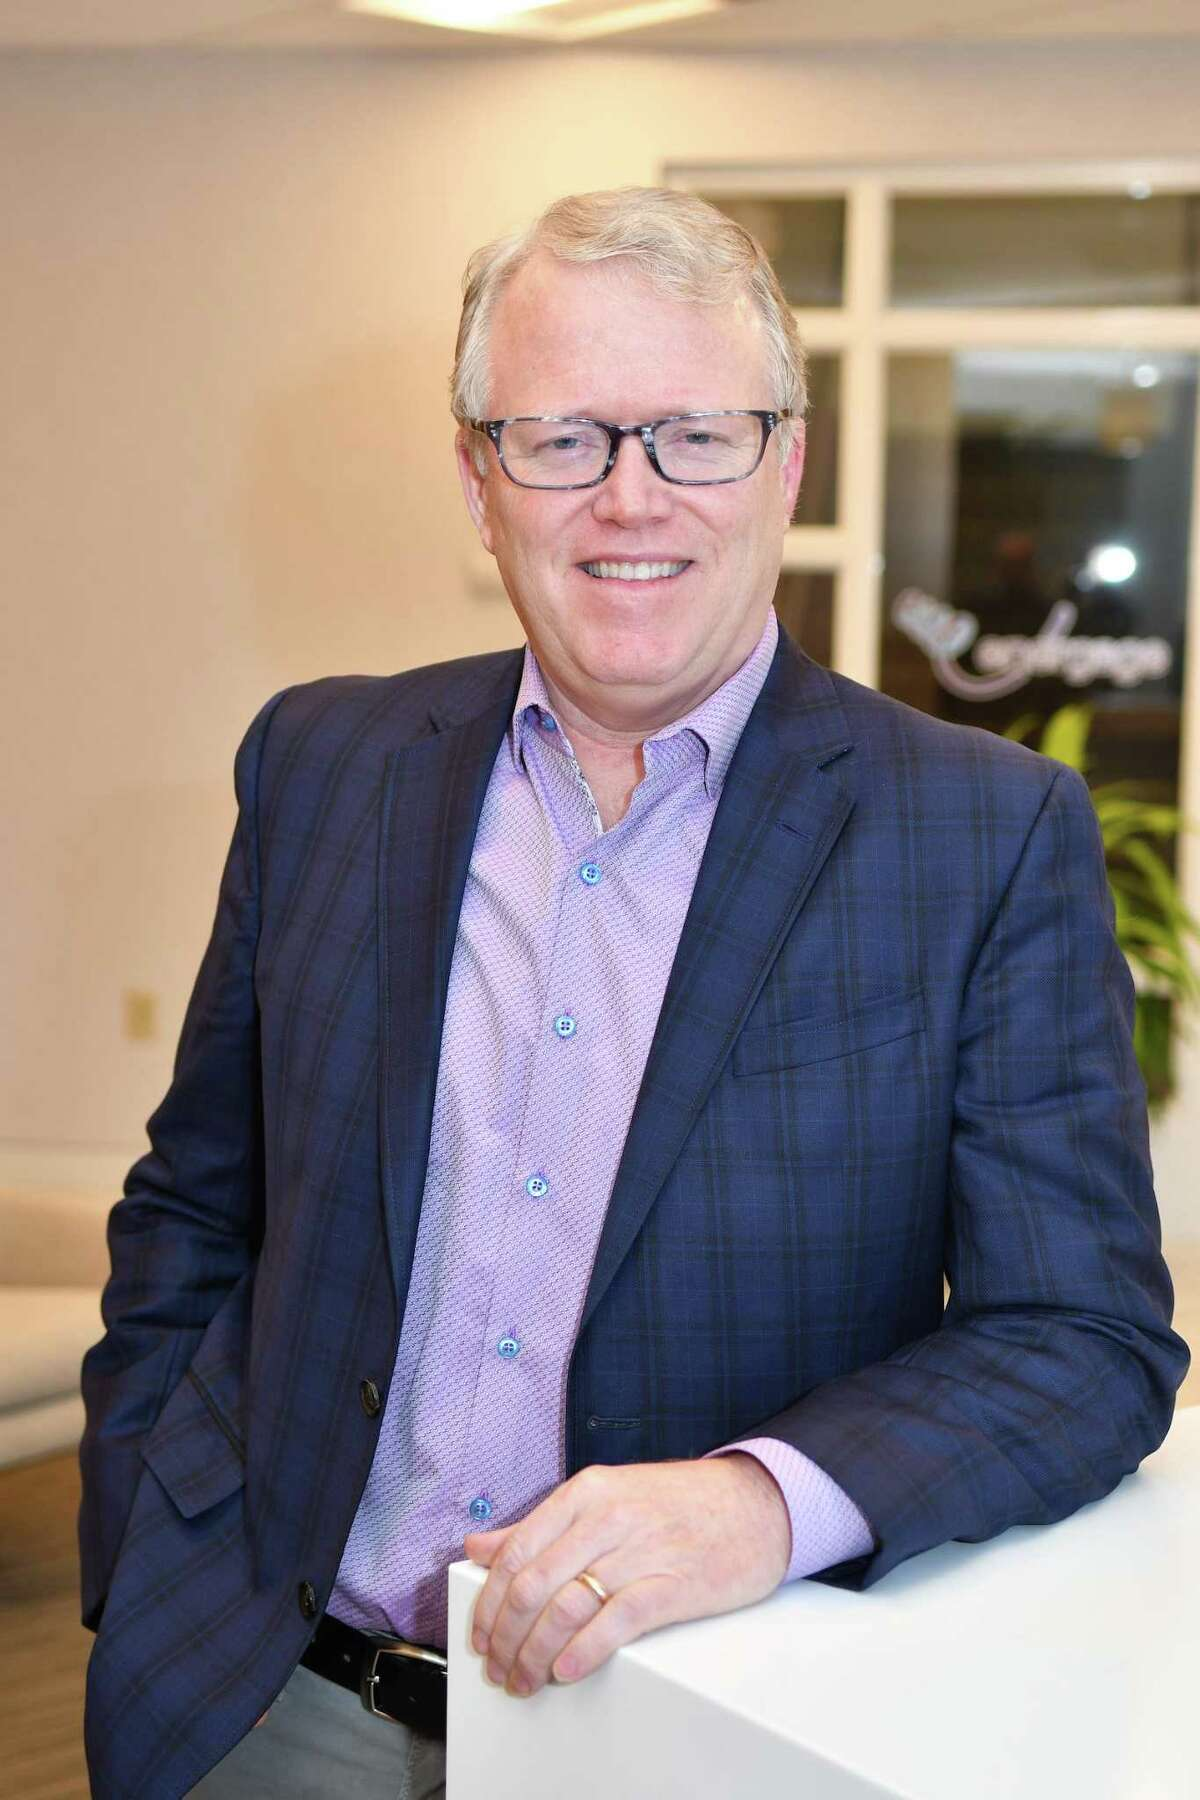 Doug Claffey is founder and chief strategy officer at Energage.